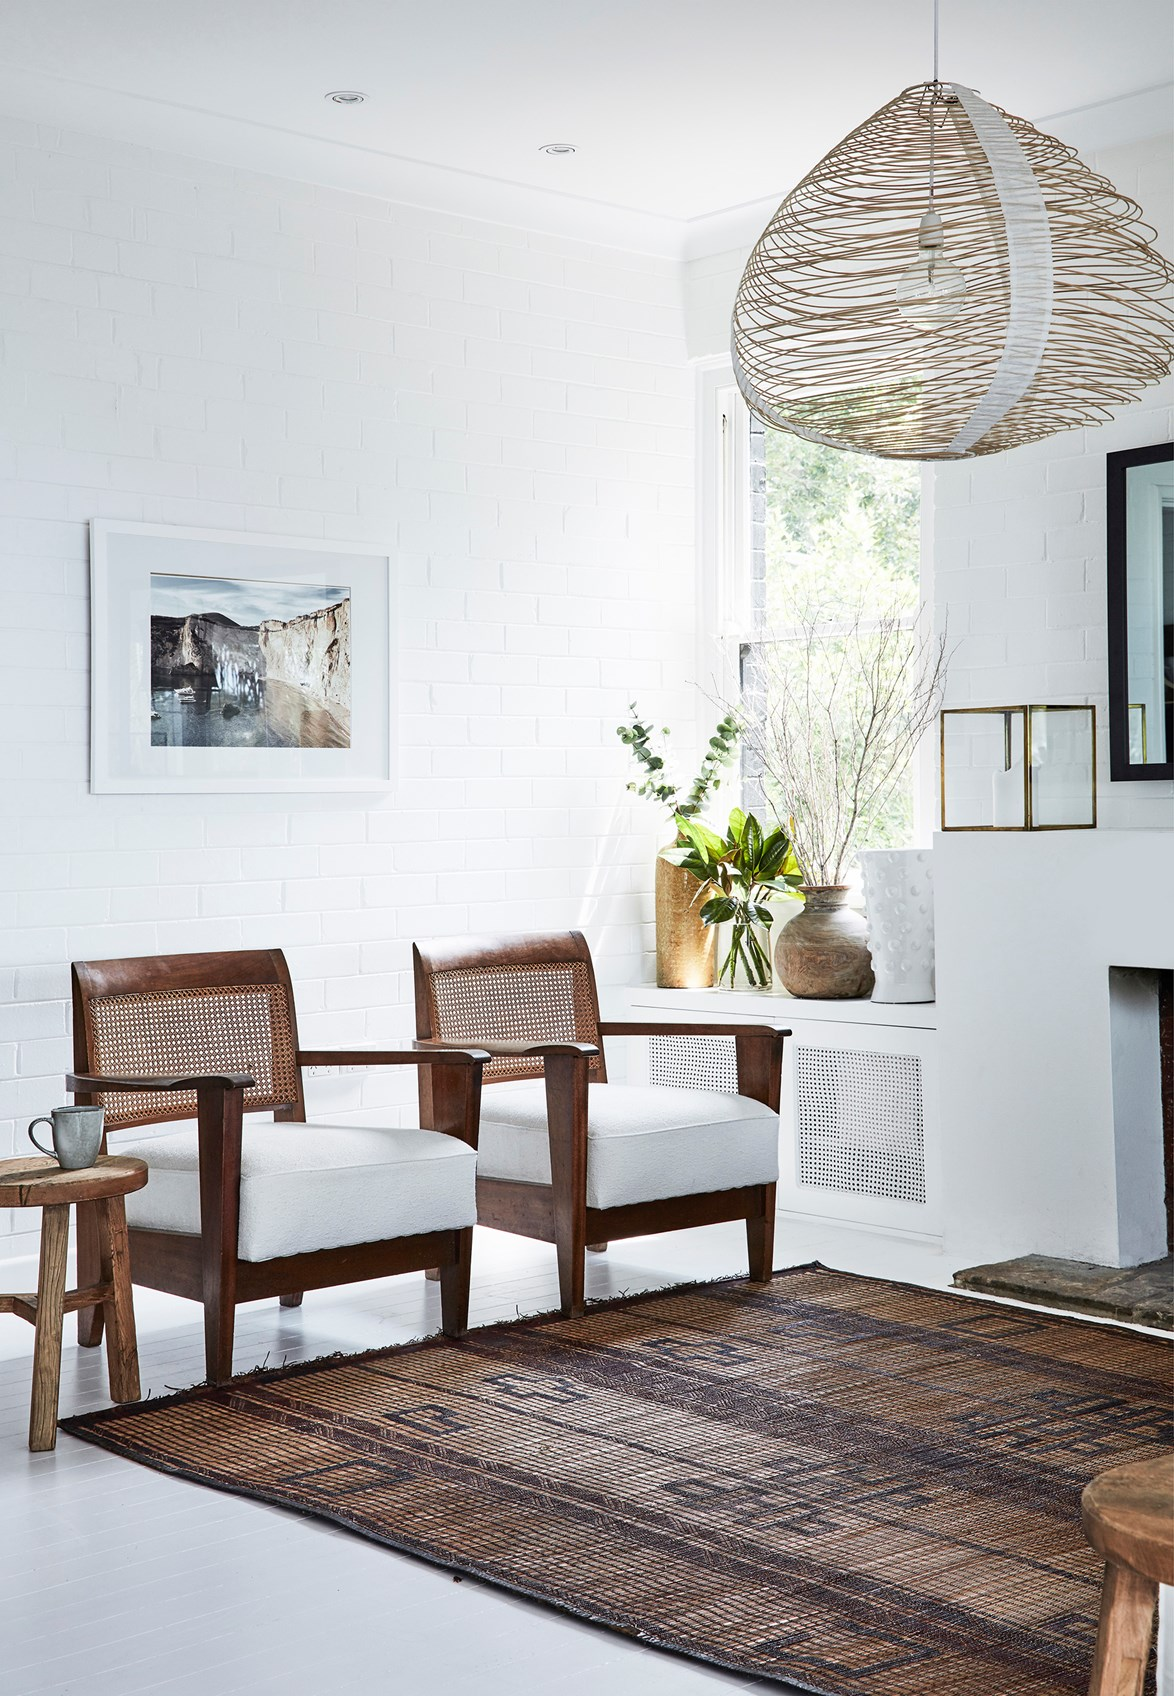 """The owner of this [rustic coastal home](https://www.homestolove.com.au/rustic-coastal-style-home-19795